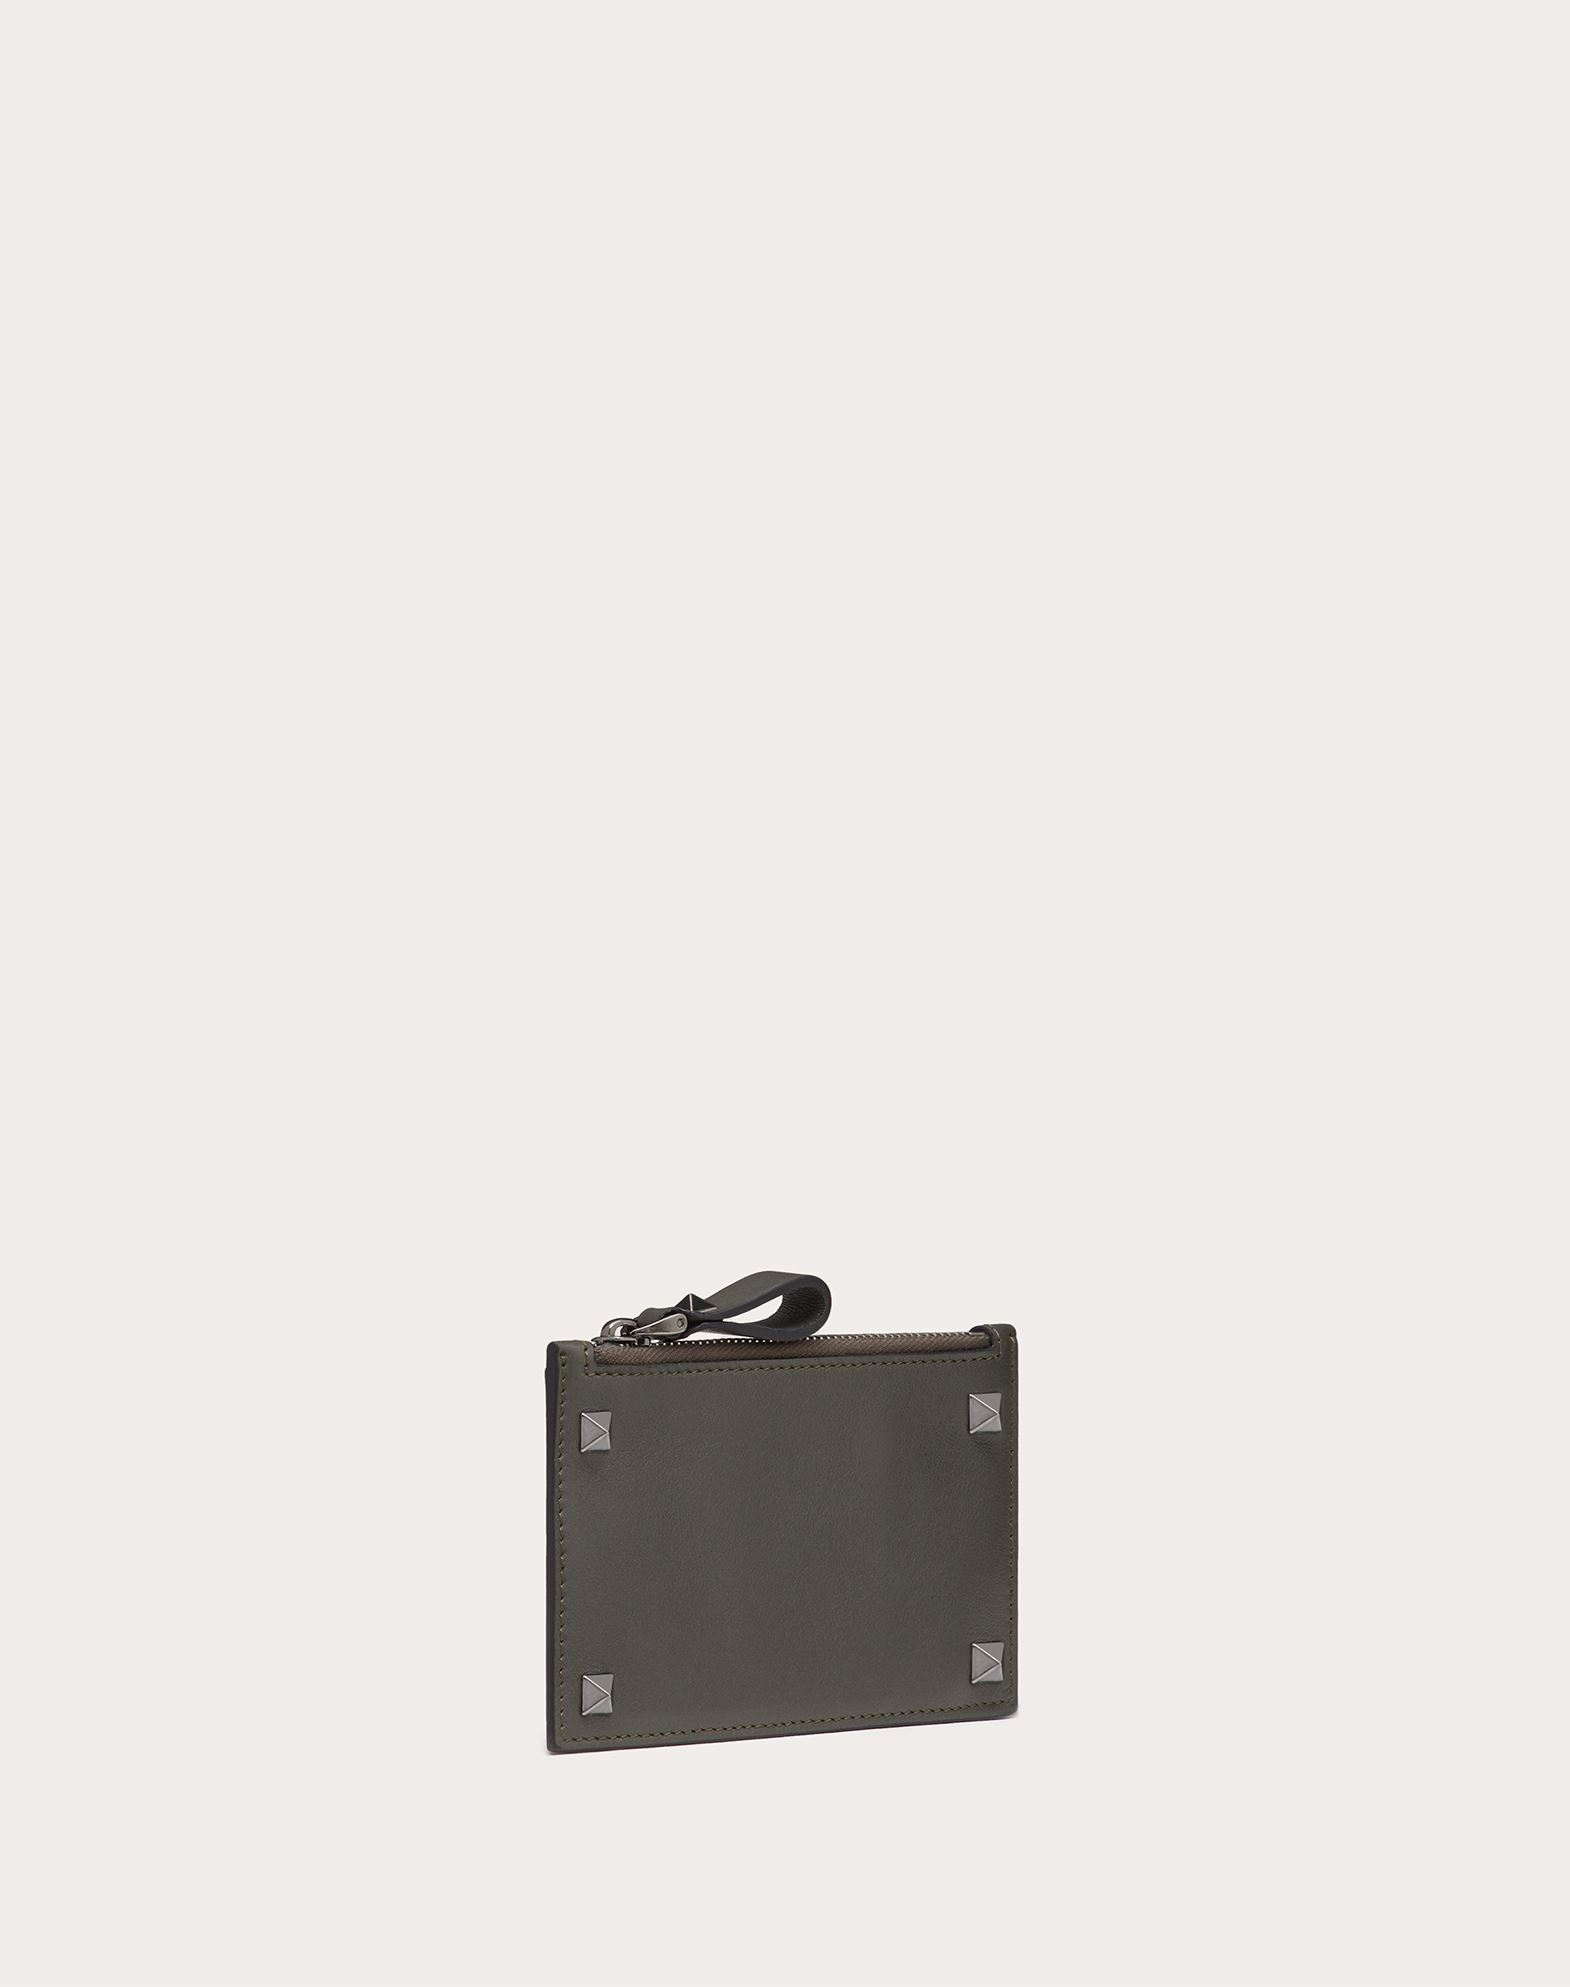 VALENTINO GARAVANI Rockstud card holder CARD CASE U e